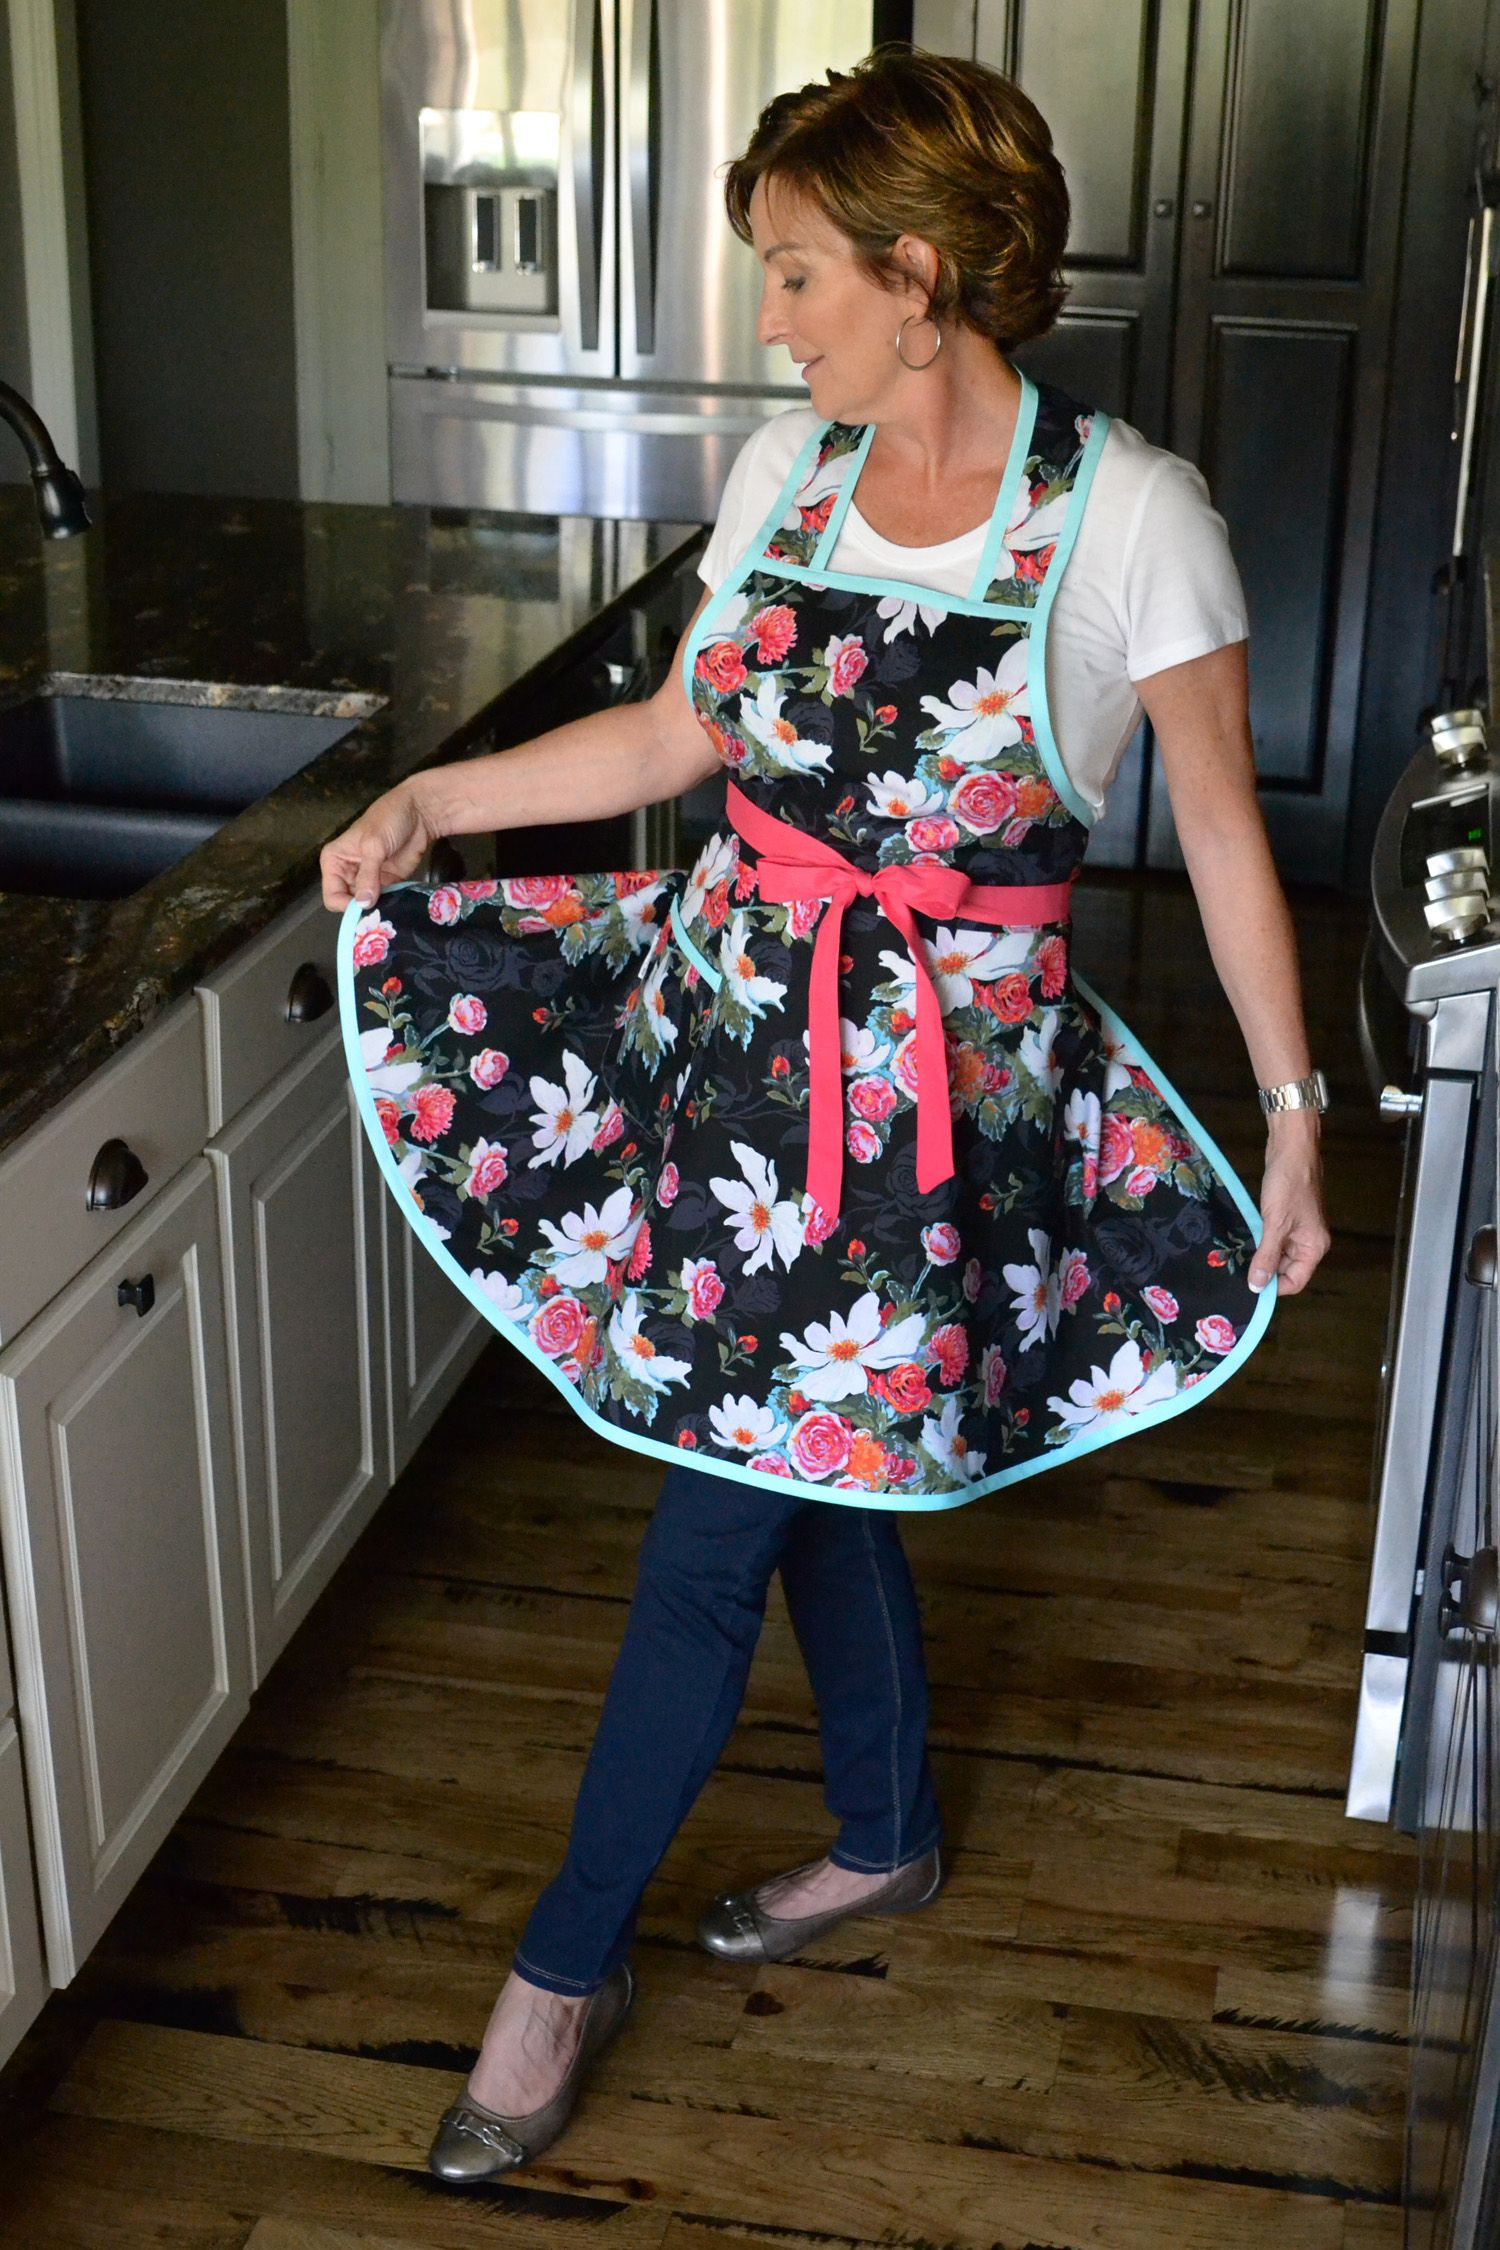 Stella Pinafore Retro Apron Asian Inspired Magnolia Black Pink Floral